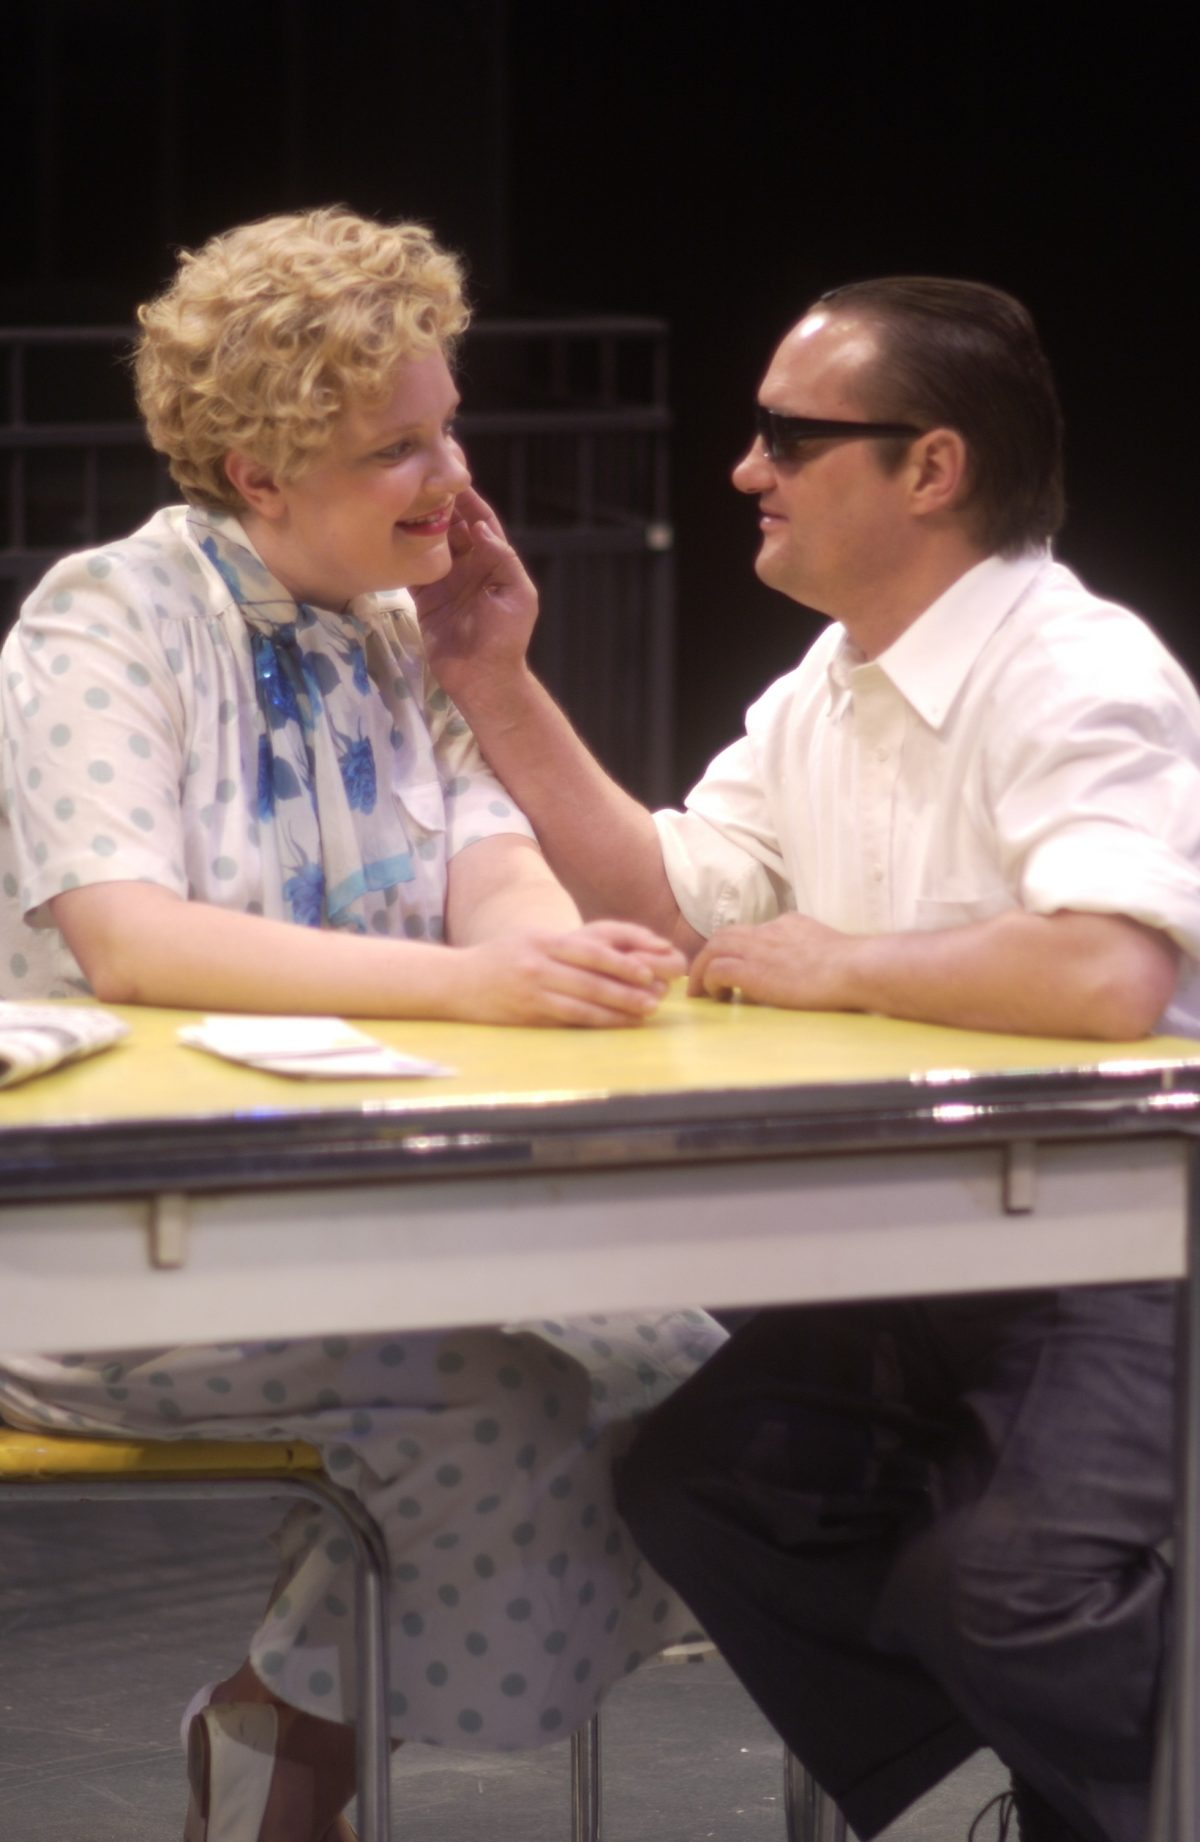 Woman in 50s dress sitting at a table, man with sunglasses sitting next to her touching her face.